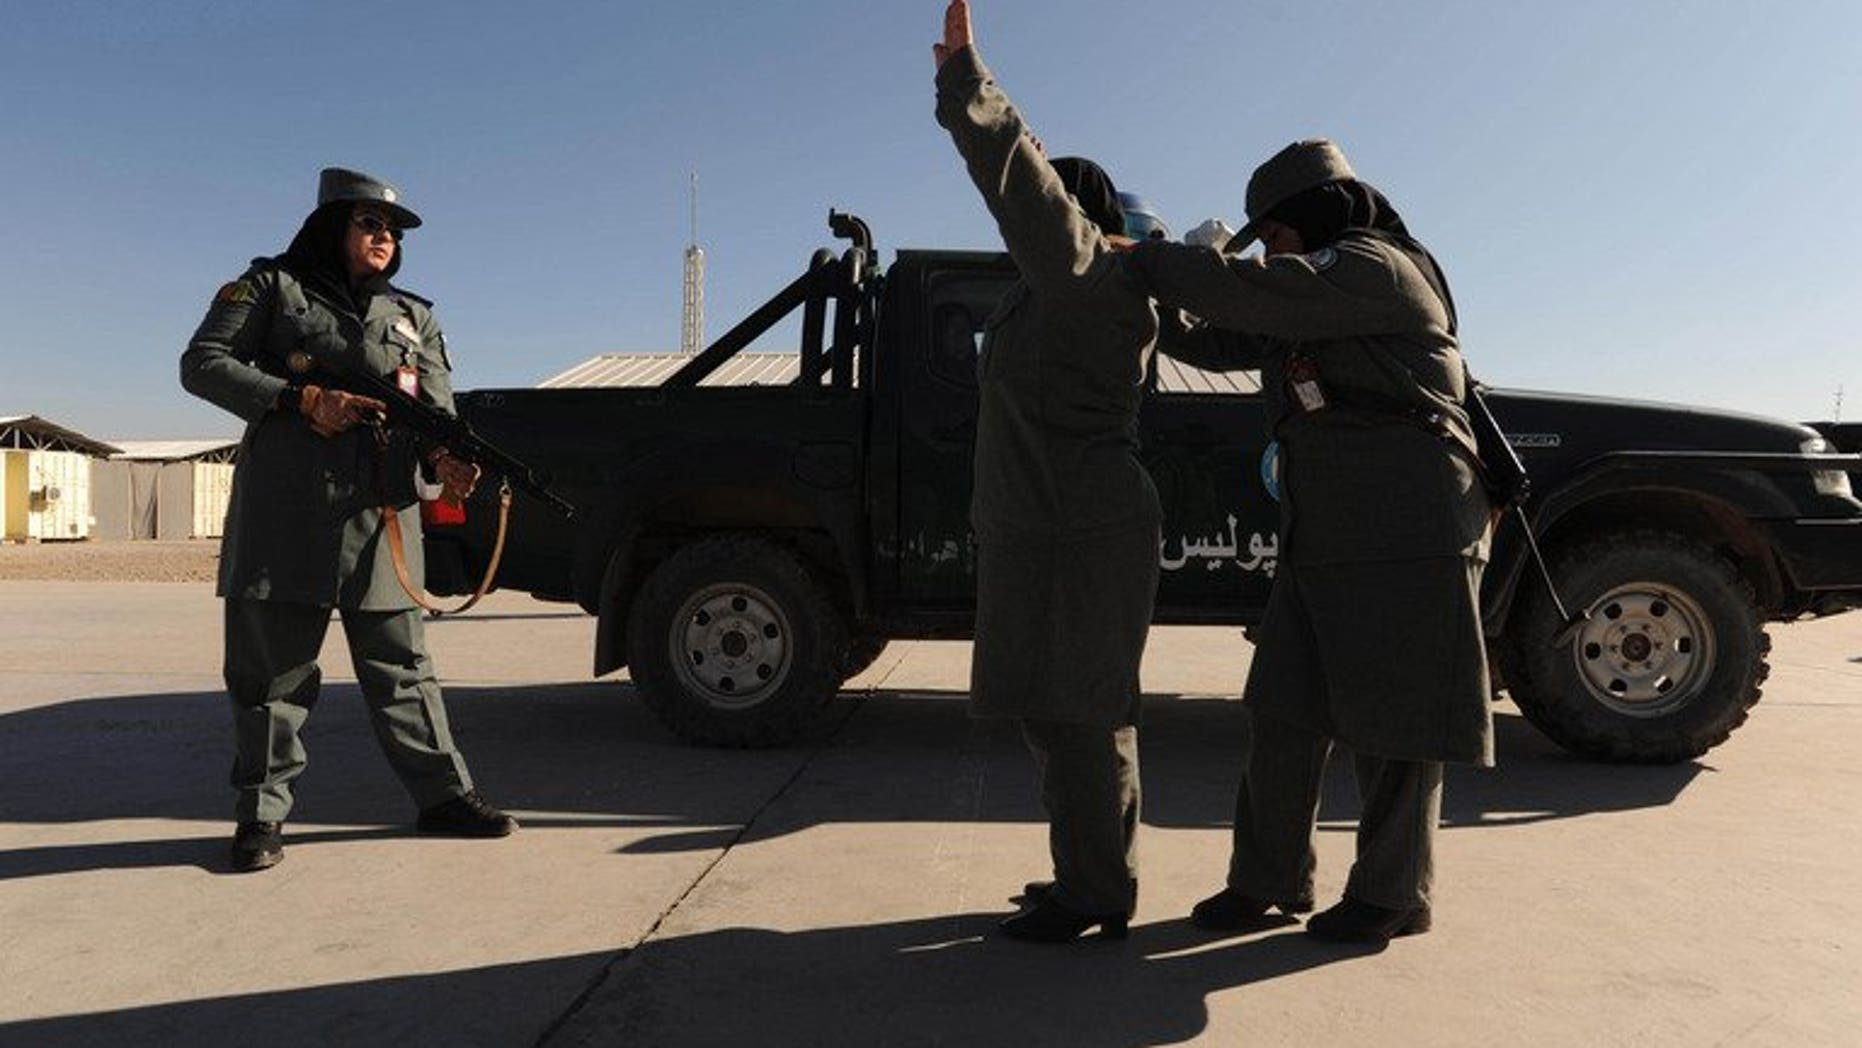 Afghan female police officers undergo training in Herat province on December 8, 2011. The top female police officer in restive Helmand province has died a day after being attacked.